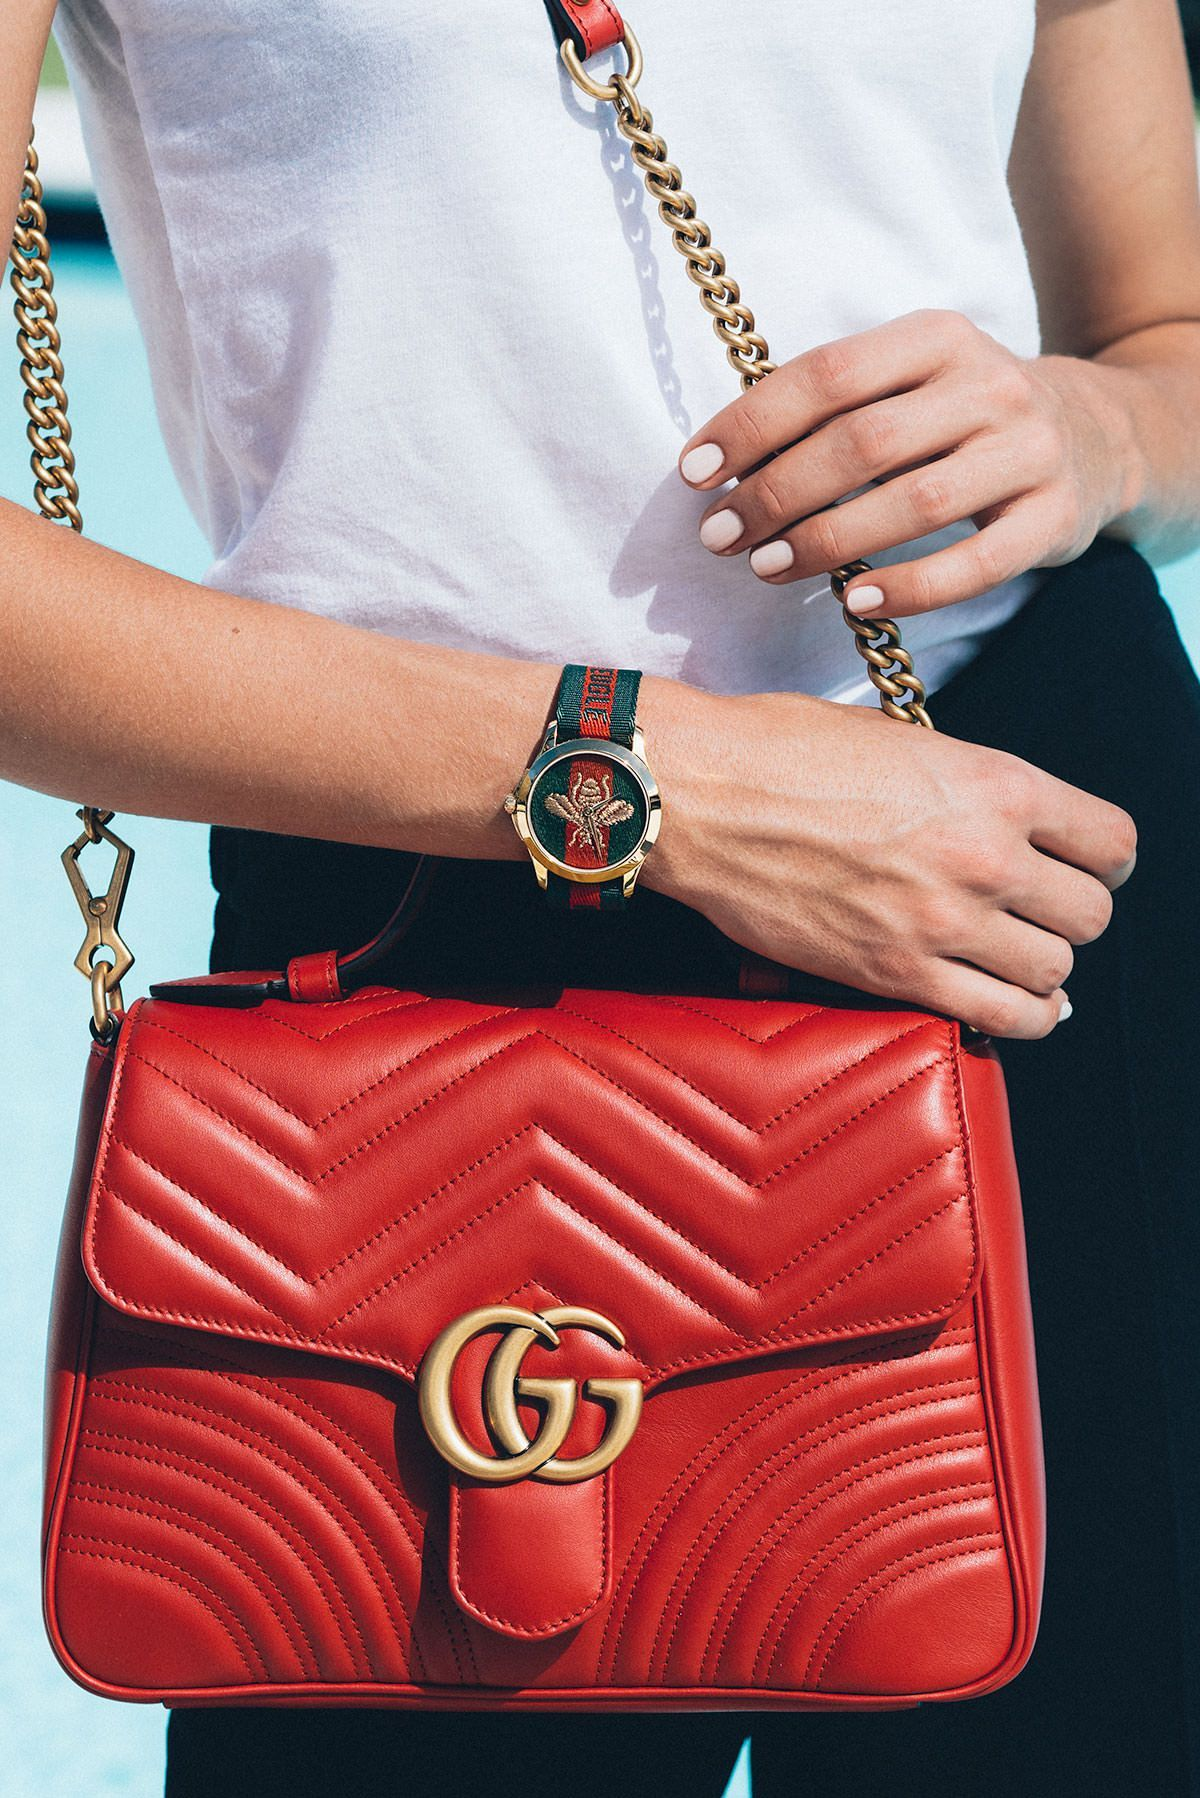 696c32bc6b1b A Close Look at the Amazing Details of Gucci Handbags and Timepieces -  PurseBlog